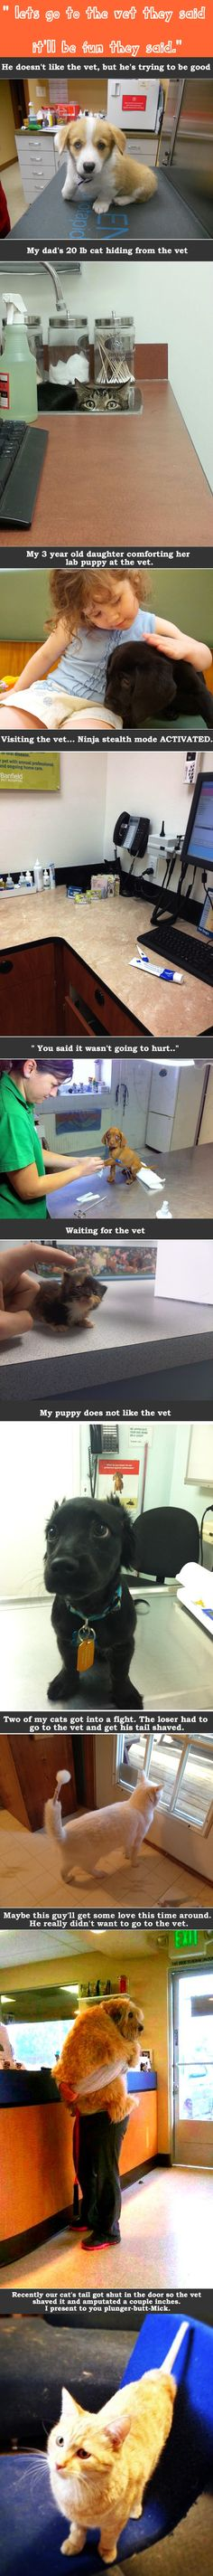 Pets At The Vet! Hilarious Photos Of Terrified Dogs And Cats Who Really Don't Want A Check-Up cute animals dogs cat cats adorable dog puppy animal pets kitten funny animals funny pets funny cats funny dogs<<<I feel so bad Animal Memes, Funny Animals, Cute Animals, Animals And Pets, Animal Mashups, Animal Funnies, Animal Quotes, Tierischer Humor, Mundo Animal